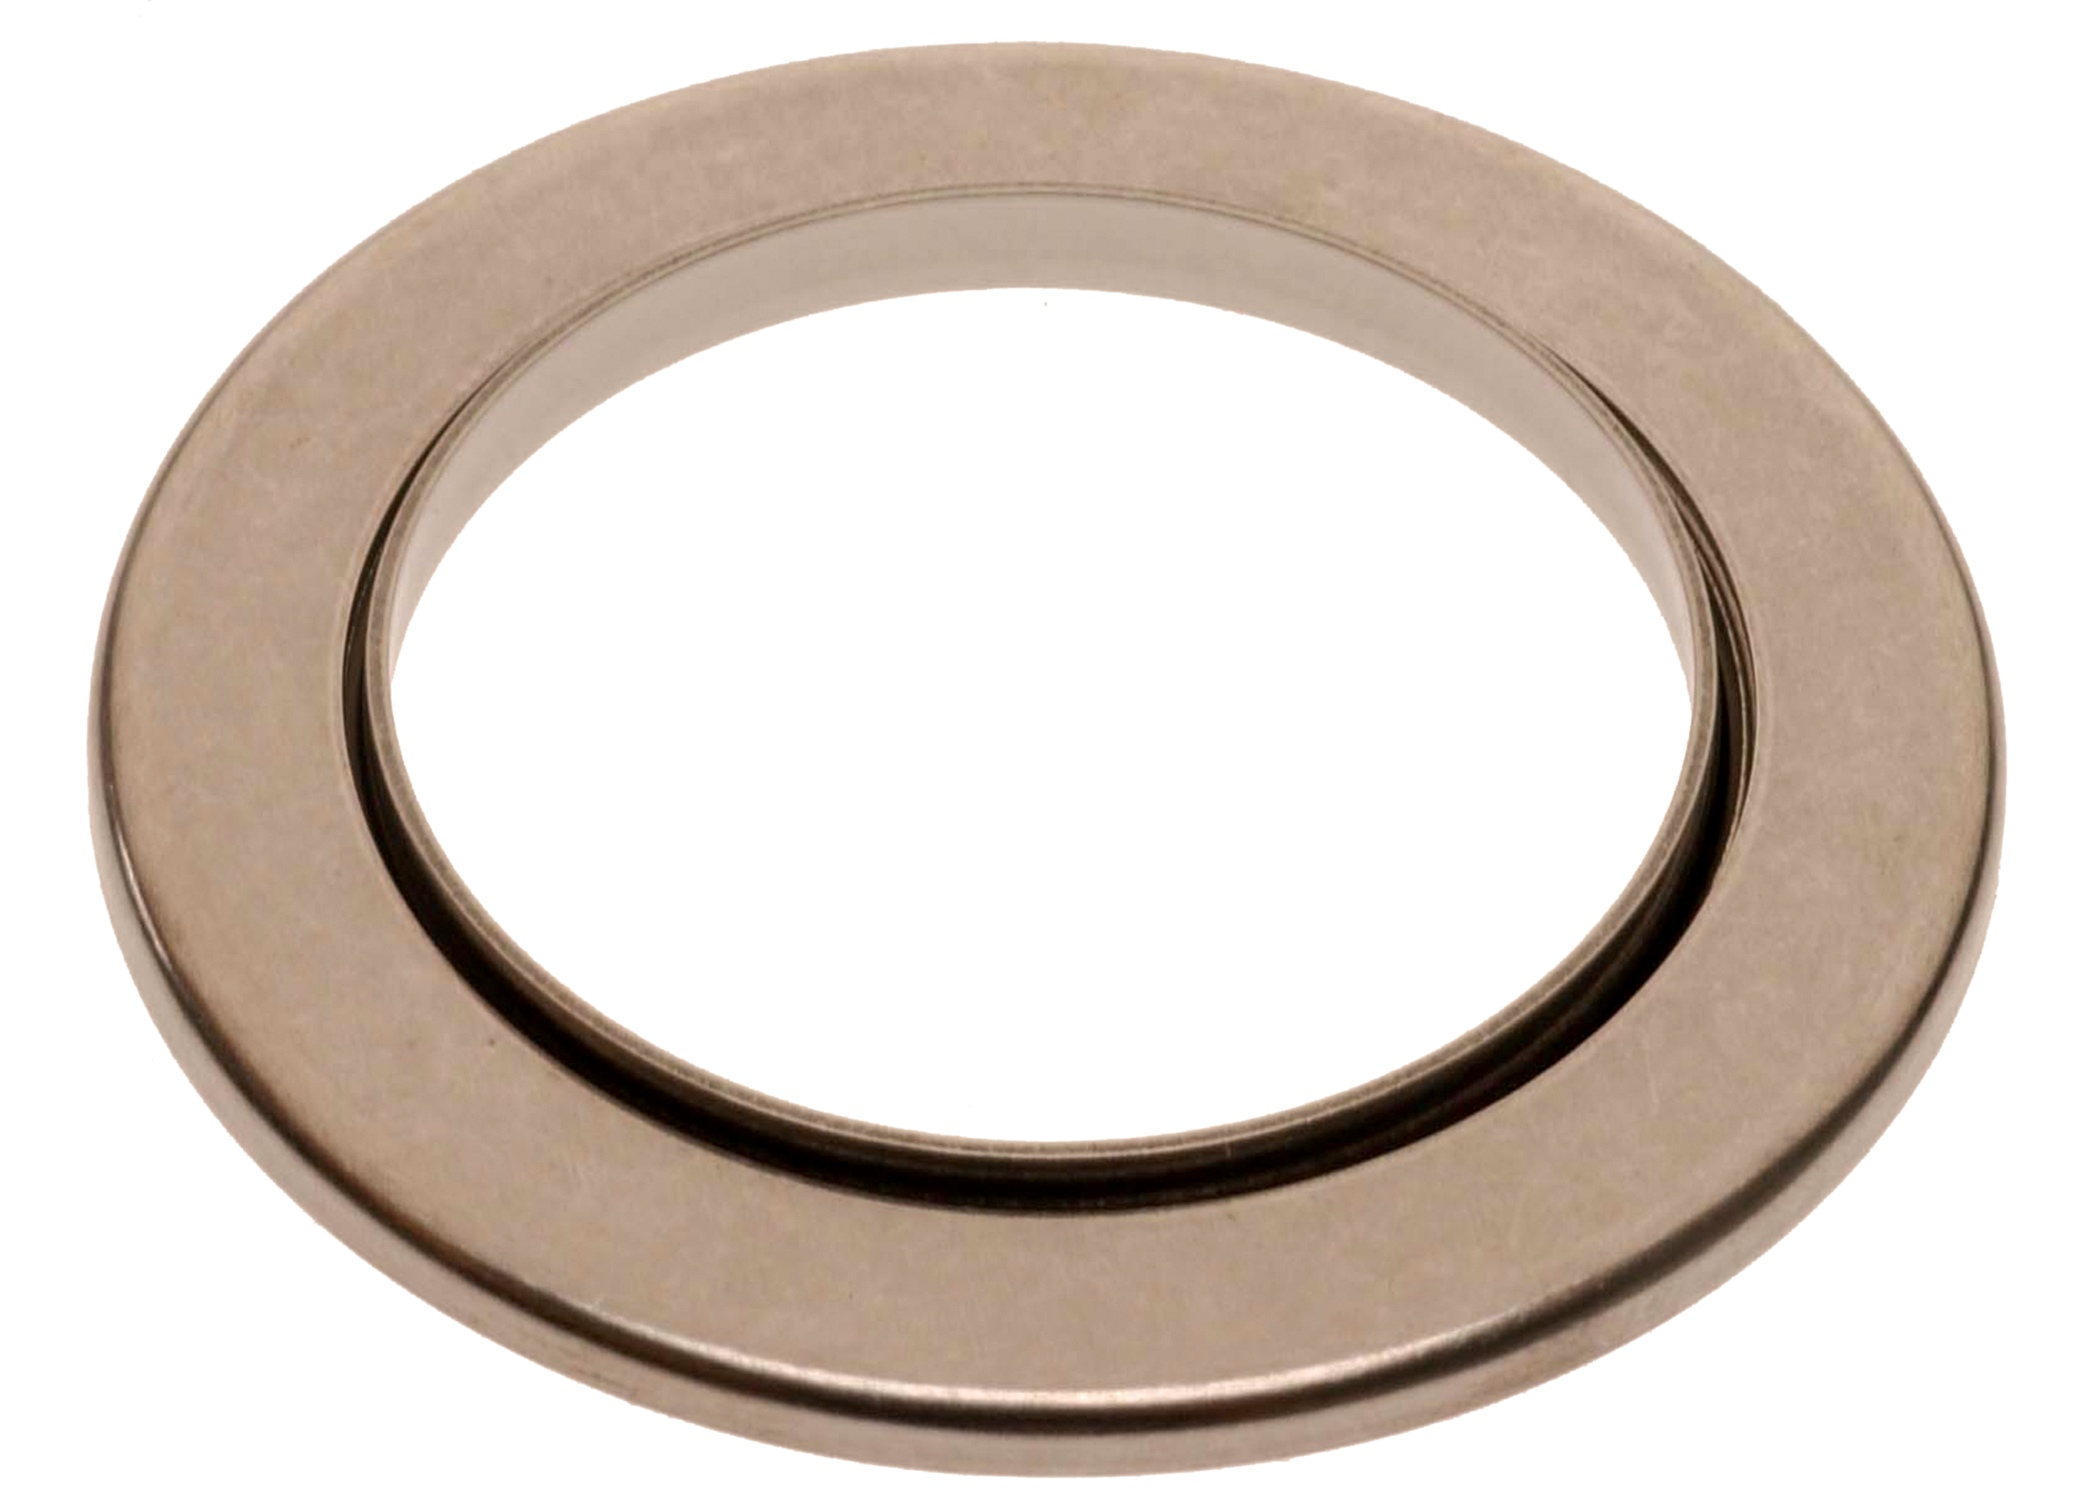 ACDELCO OE SERVICE CANADA - Auto Trans Output Shaft Thrust Bearing - DCG 8623922